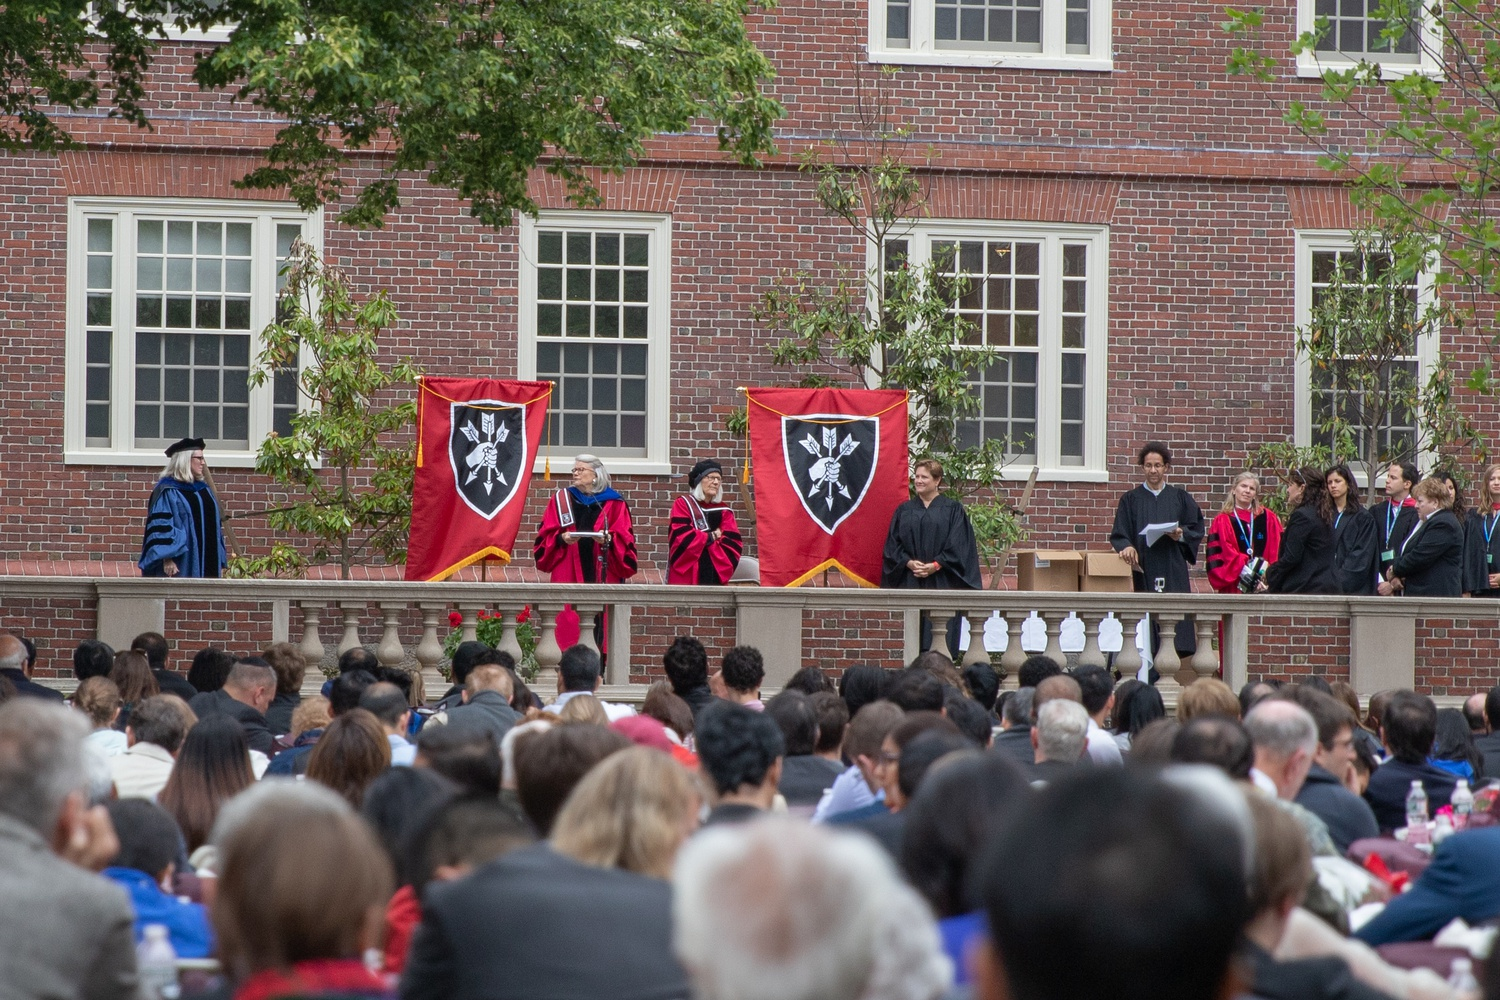 Lowell's commencement ceremony in 2019. Traditionally on Commencement Day, seniors attend Morning Exercises in Tercentenary Theater, followed by House-specific ceremonies to confer diplomas.